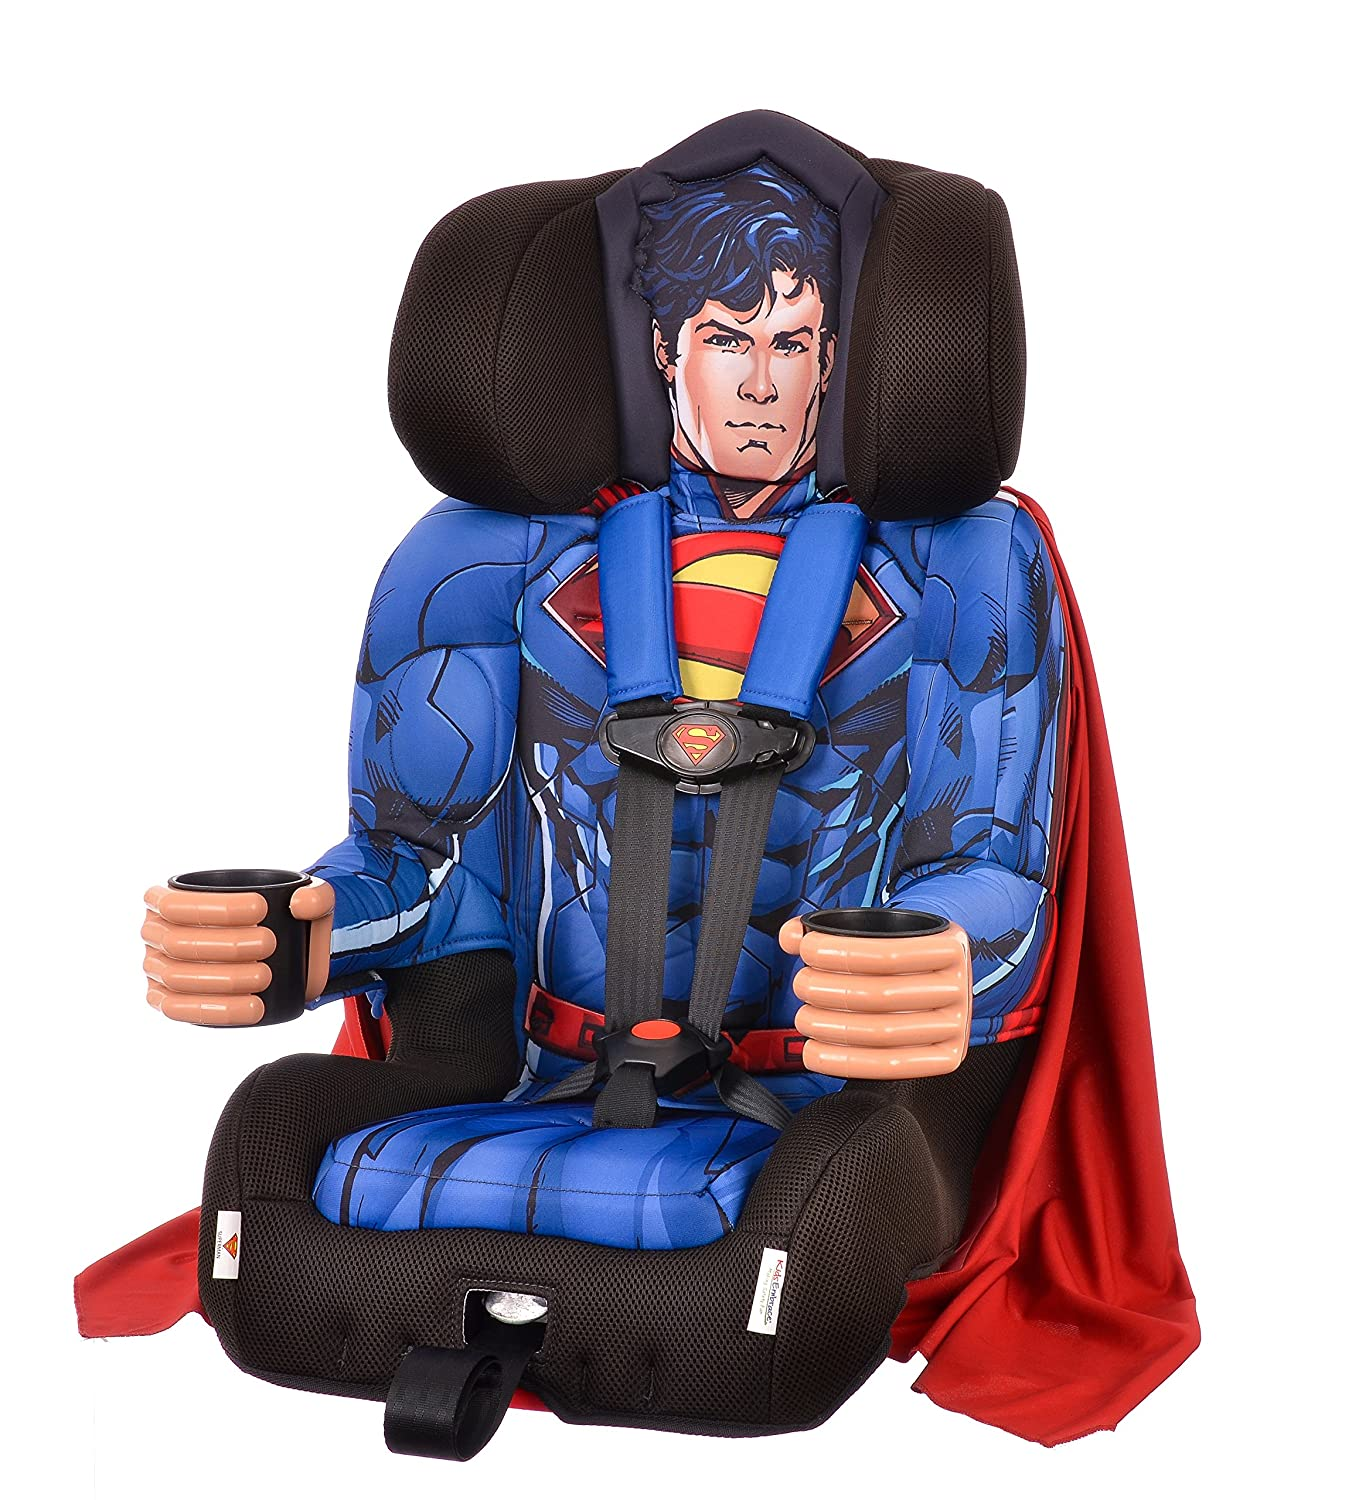 KidsEmbrace Superman Booster Car Seat DC Comics Combination 5 Point Harness With Cape